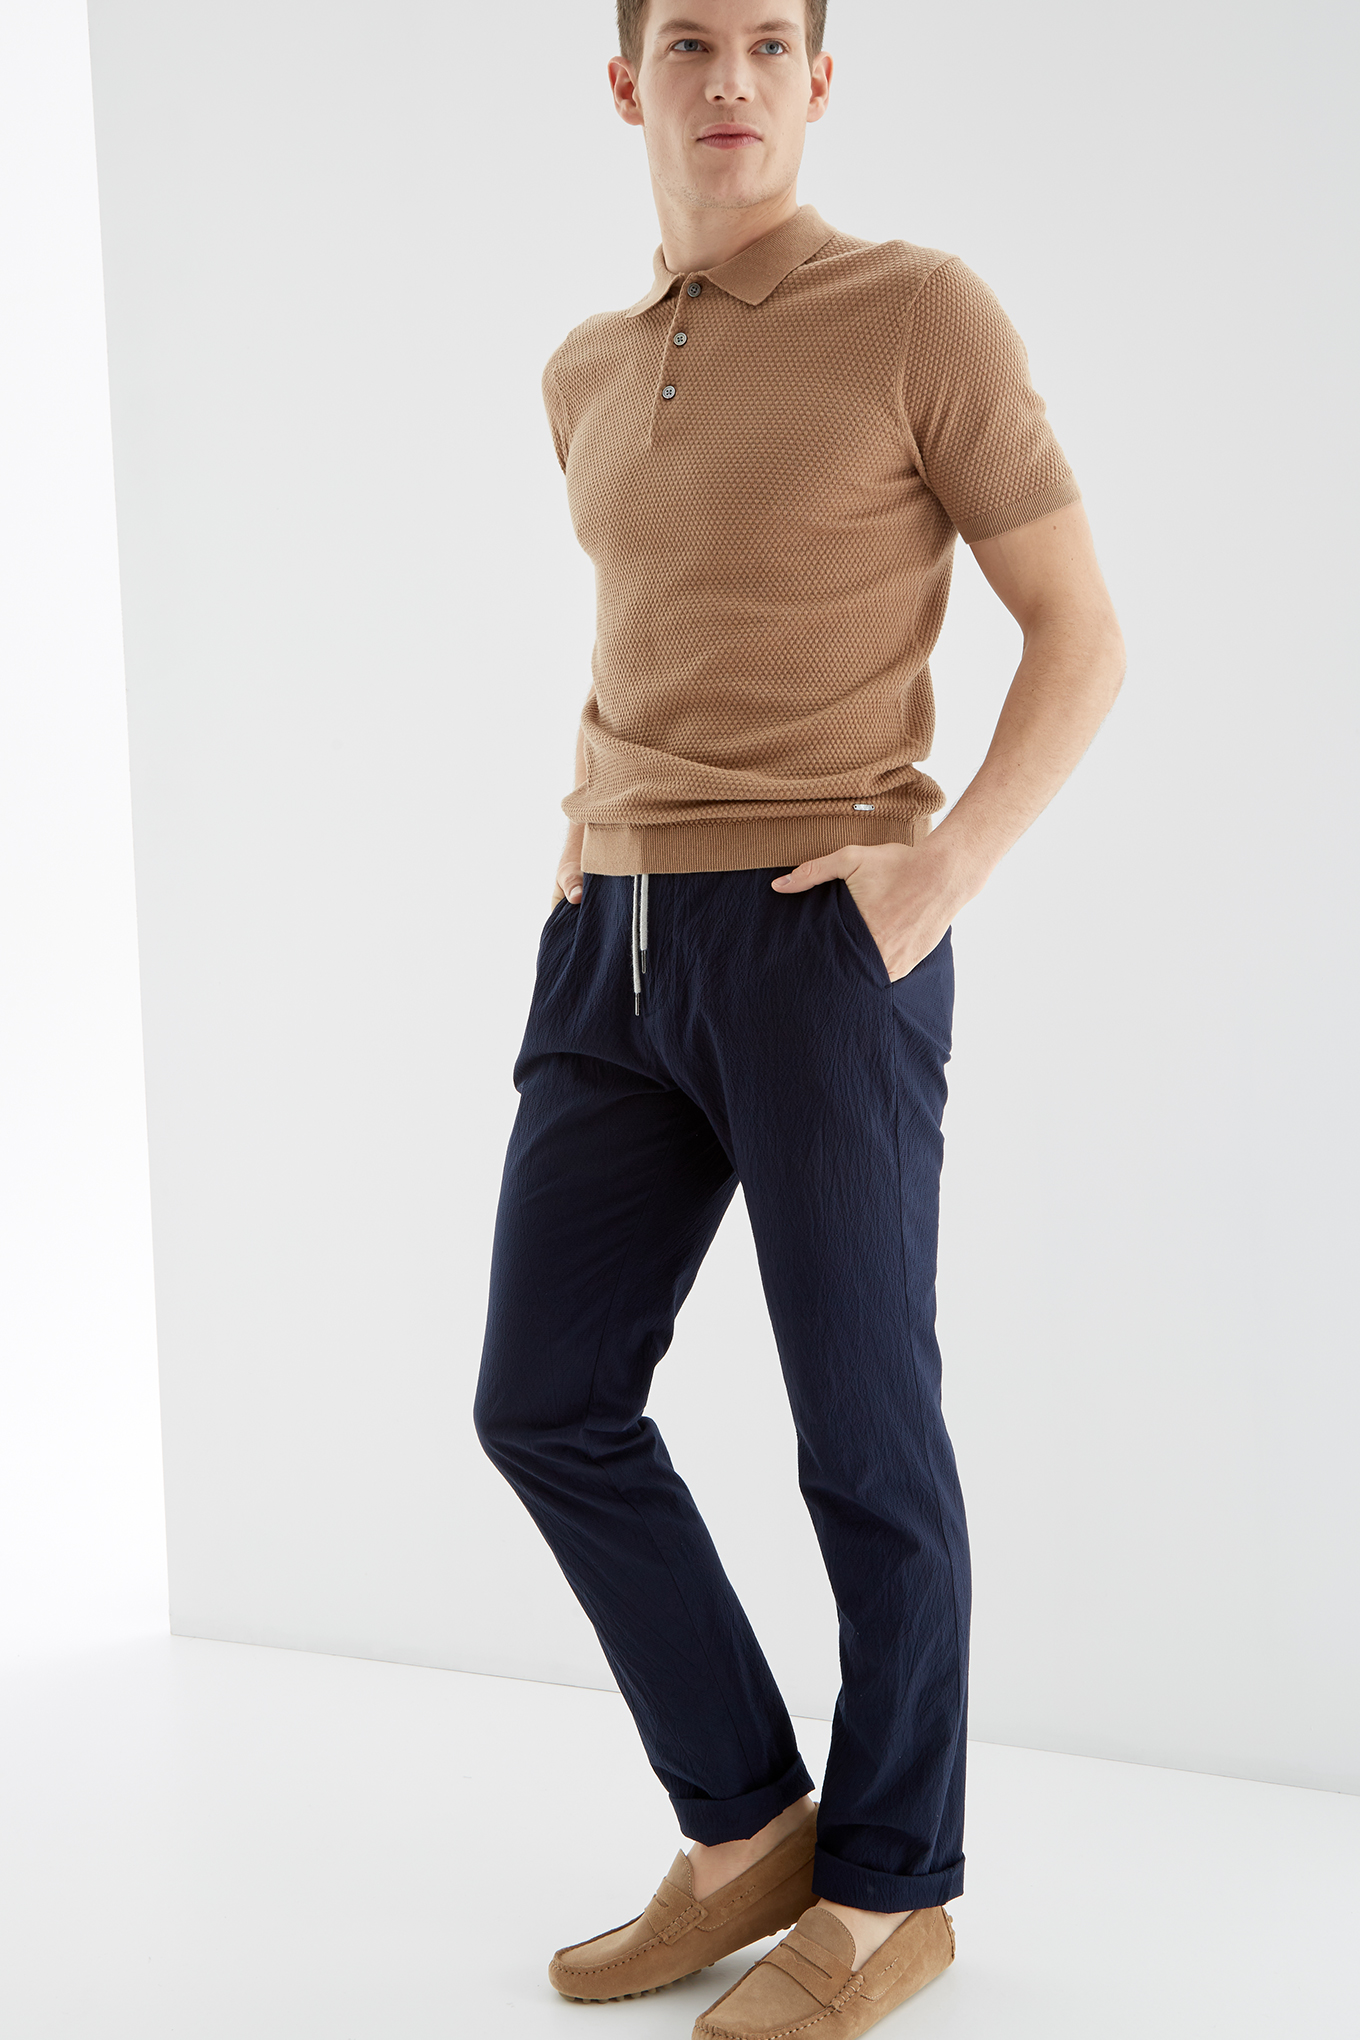 Sweater Camel Casual Man